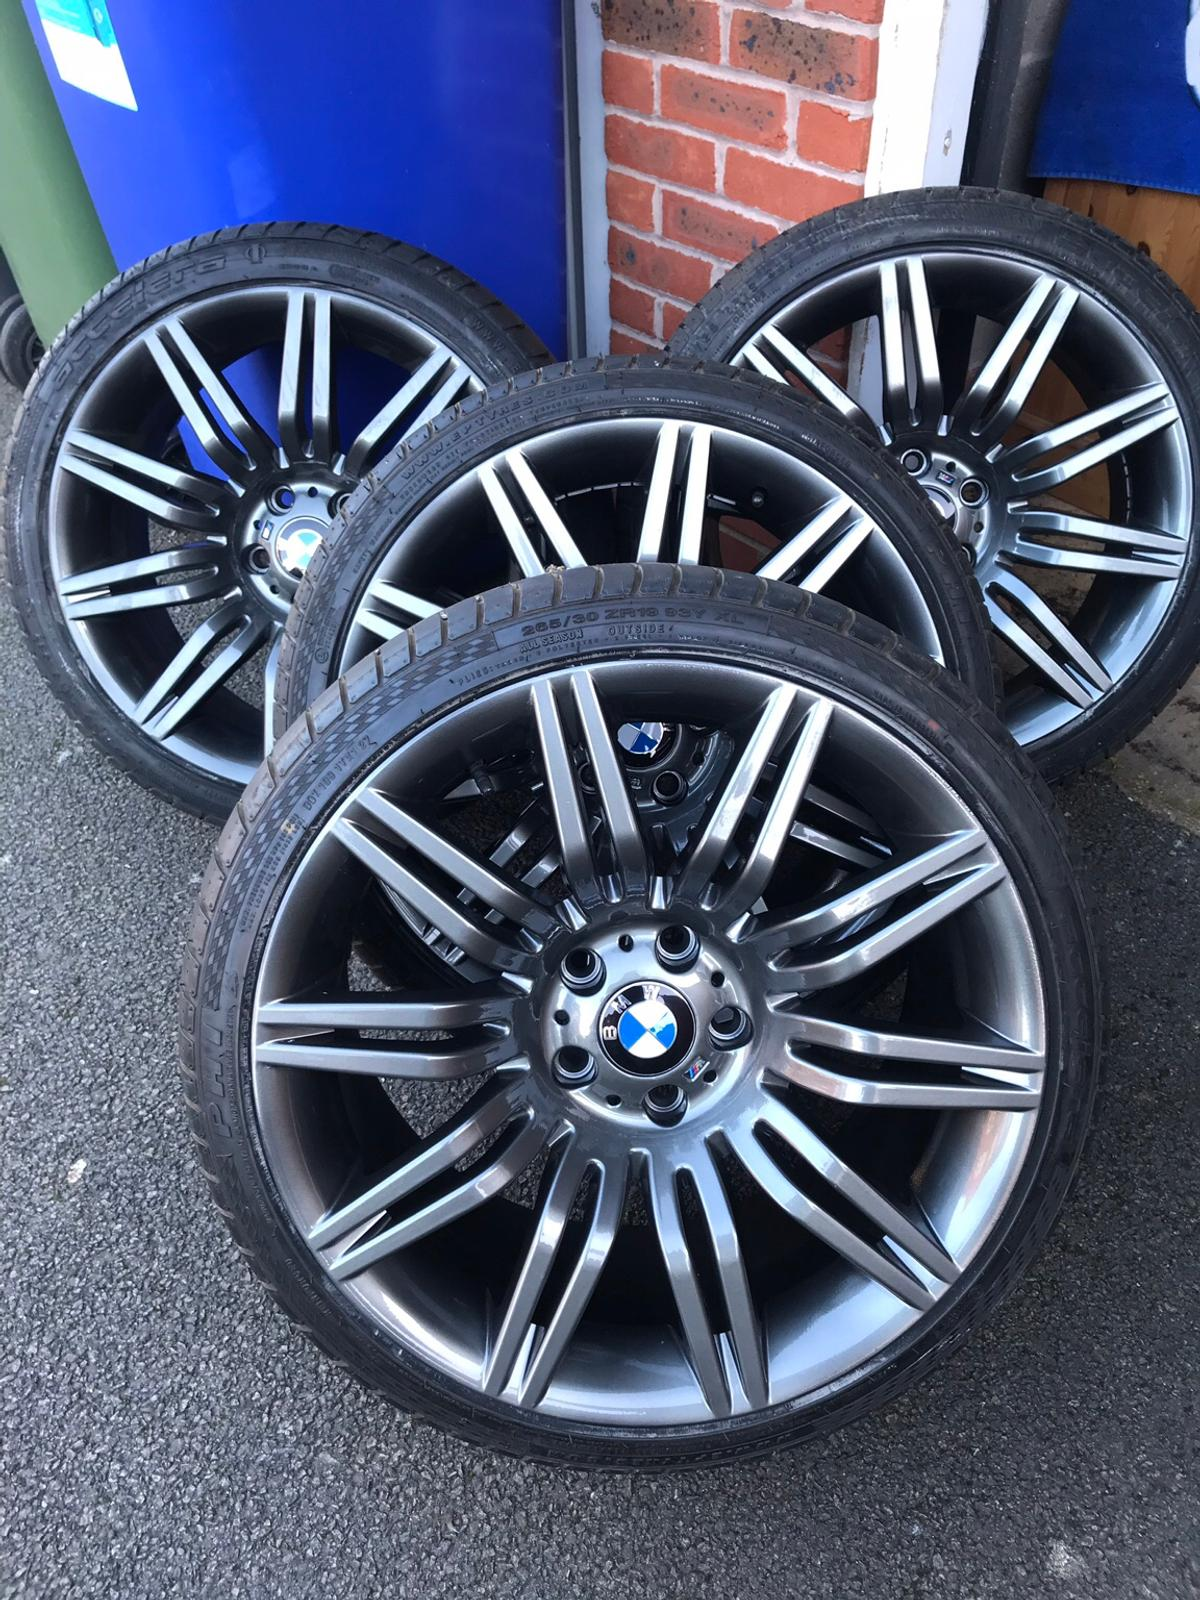 19 Bmw Spider Alloys With New Tyres In Peterborough For 845 00 For Sale Shpock